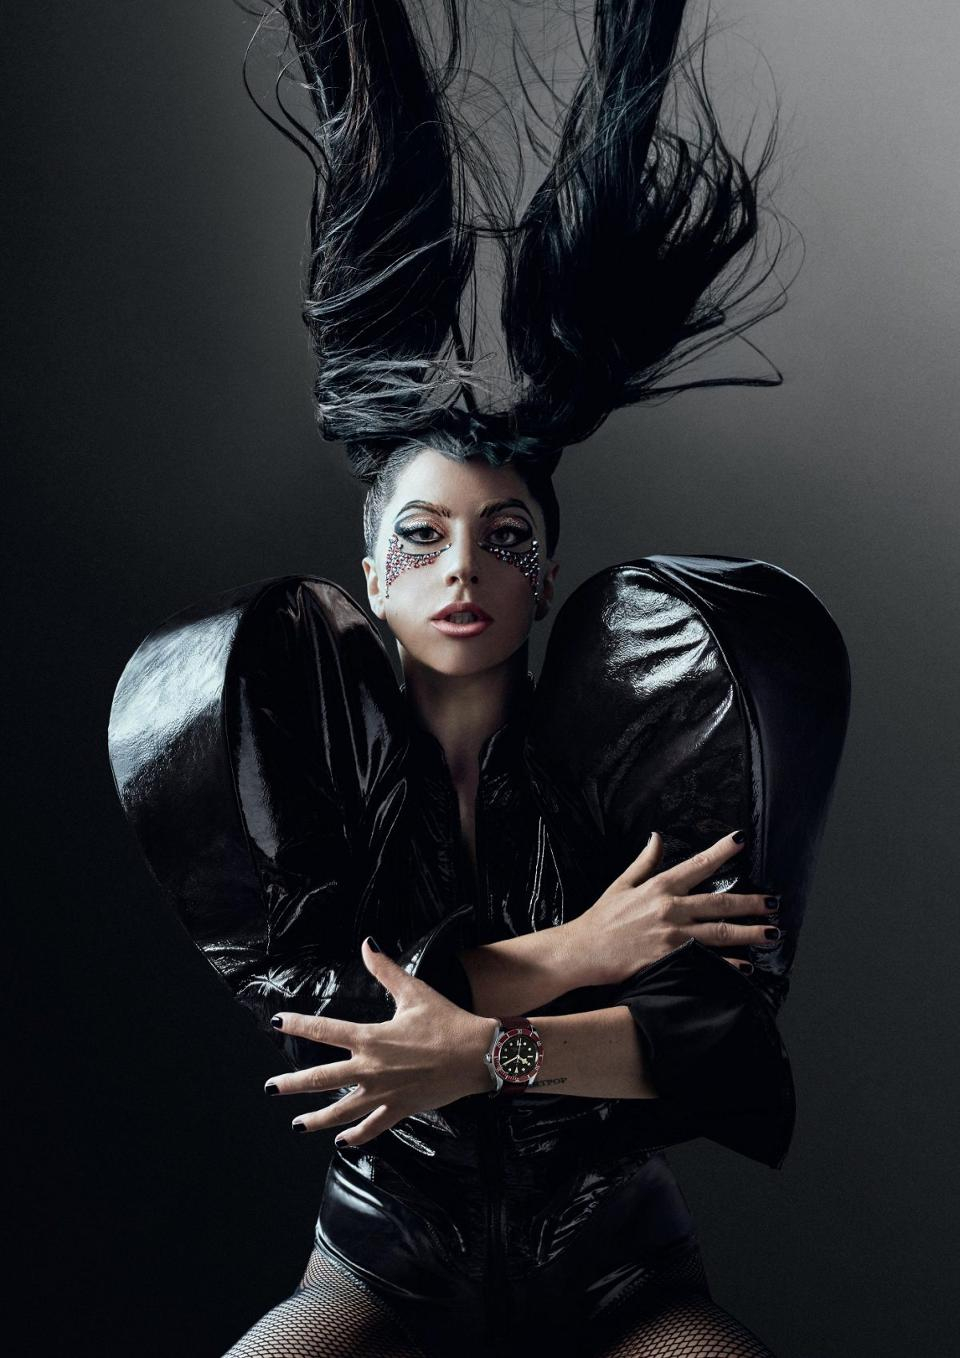 Lady Gaga The New Face for Born to Dare by Tudor born to dare by tudor Lady Gaga The New Face for Born to Dare by TUDOR Lady Gaga The New Face for Born to Dare by Tudor